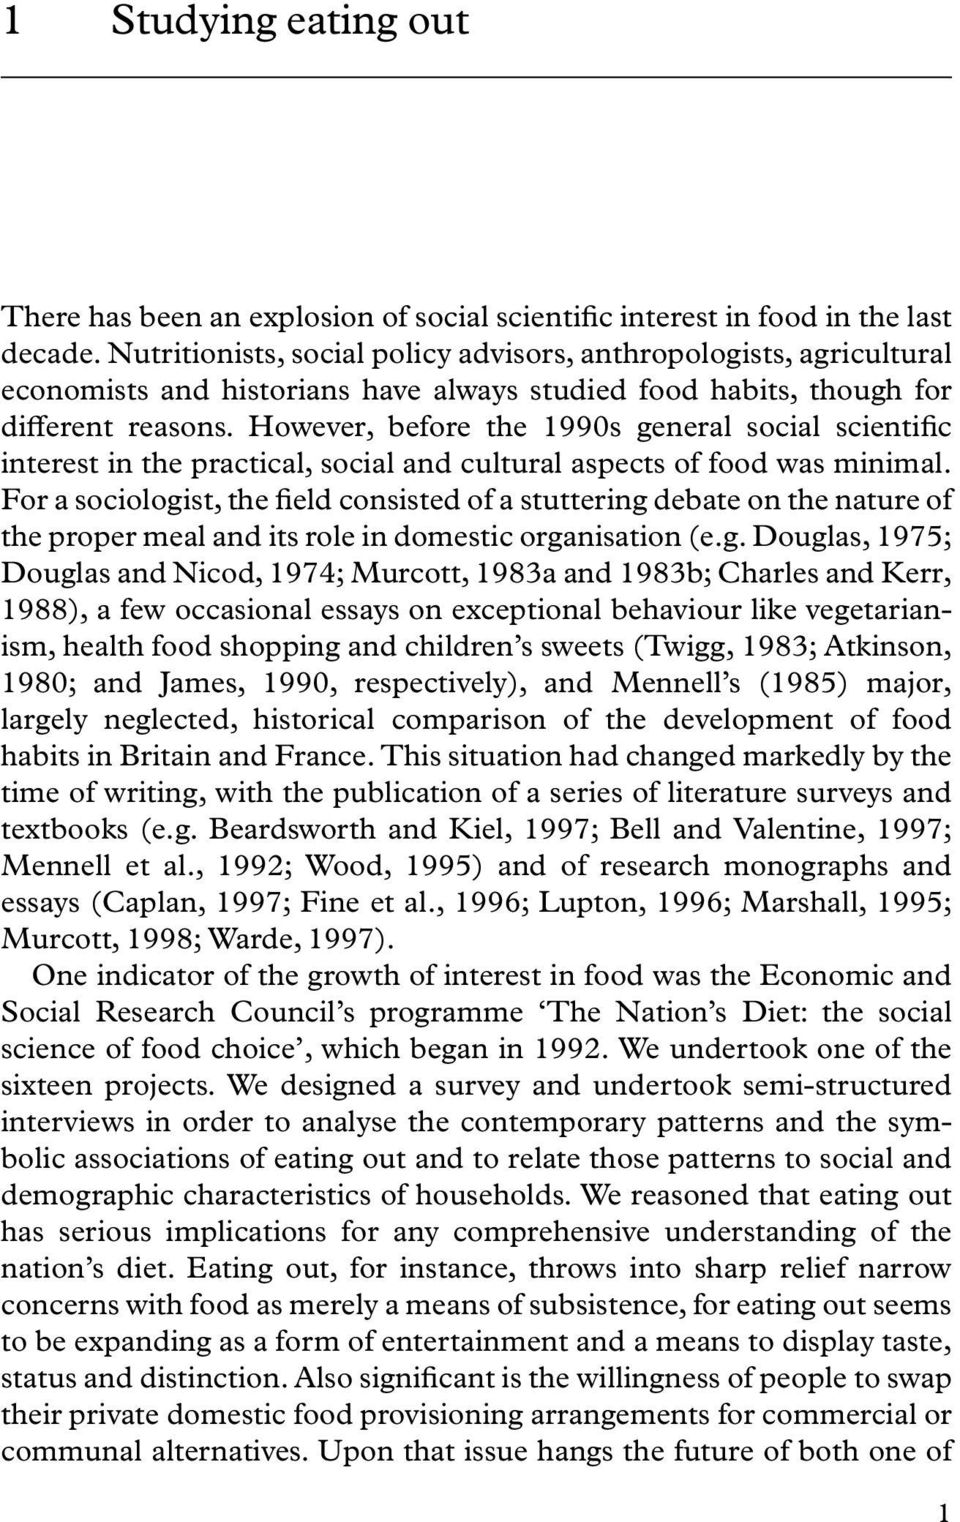 However, before the 1990s general social scientific interest in the practical, social and cultural aspects of food was minimal.